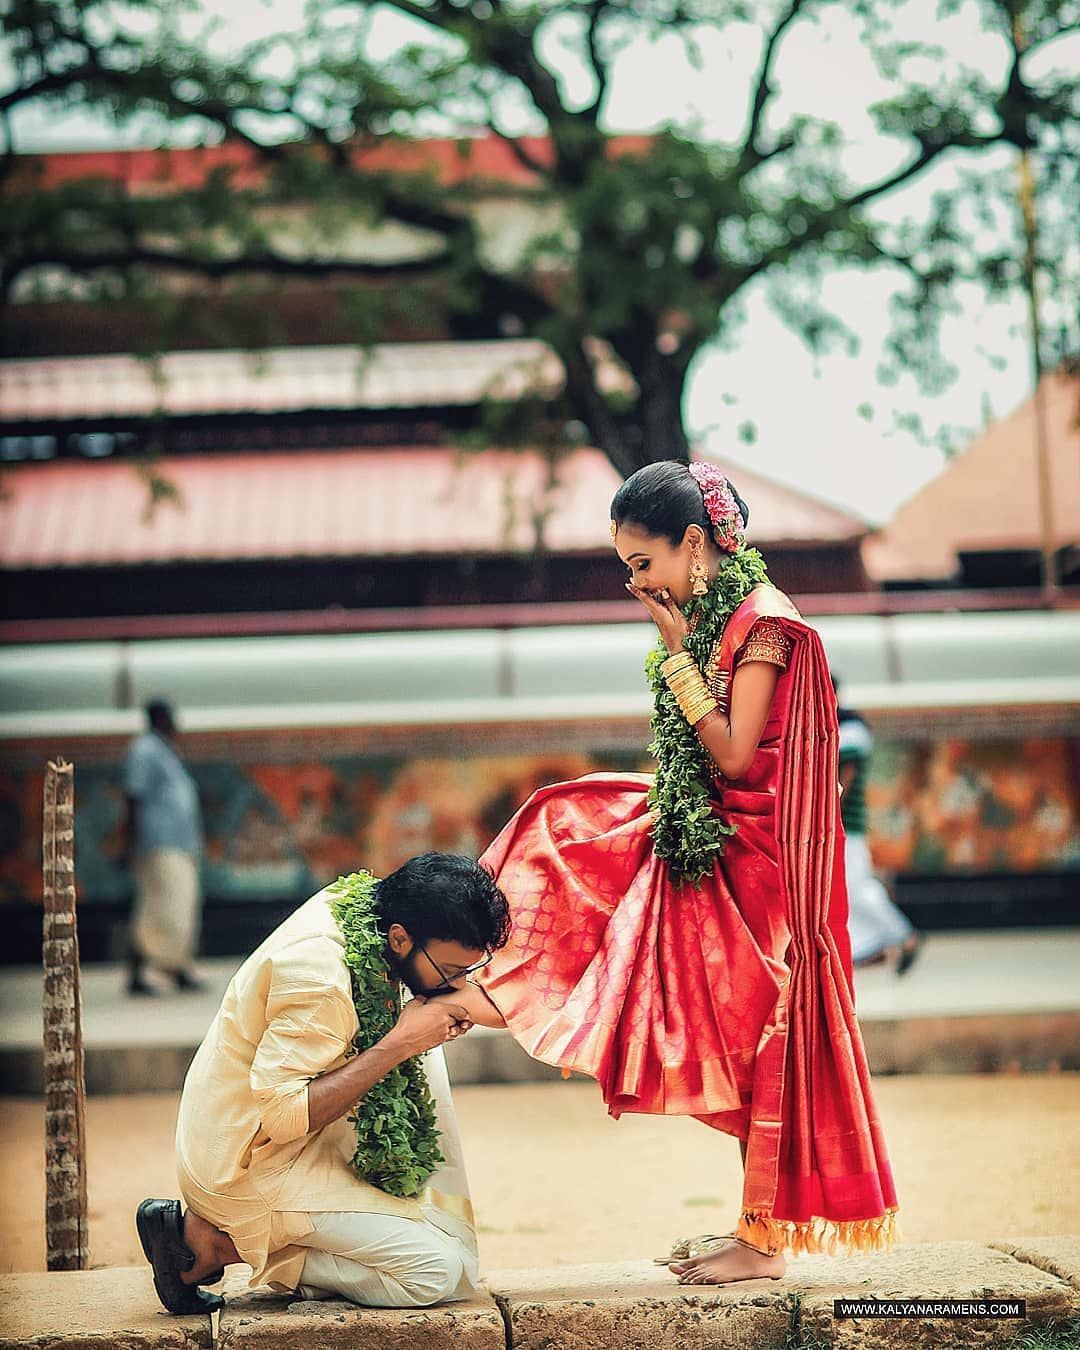 Red Gold Traditional Kanjeevaram Saree Indian Wedding Couple Photography Wedding Photoshoot Poses Wedding Couples Photography